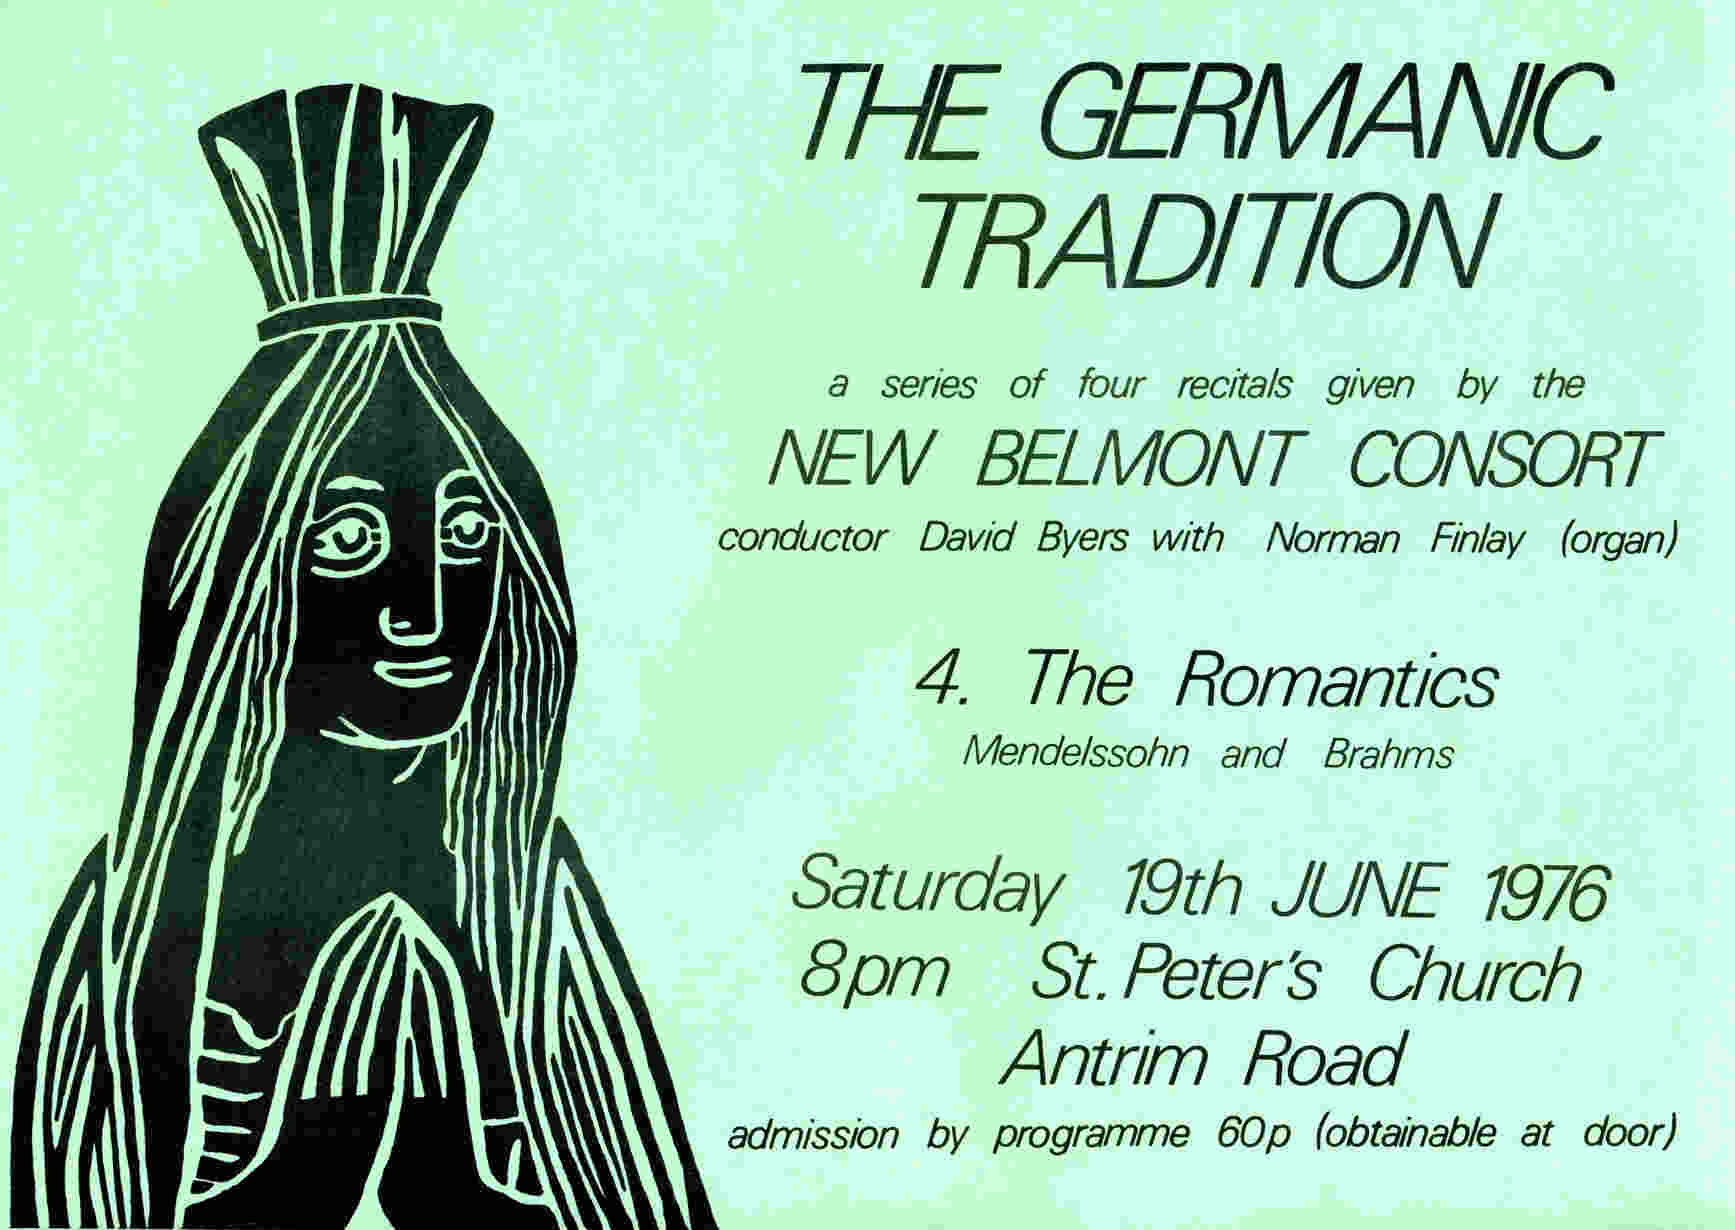 New Belmont Consort Germanic 4